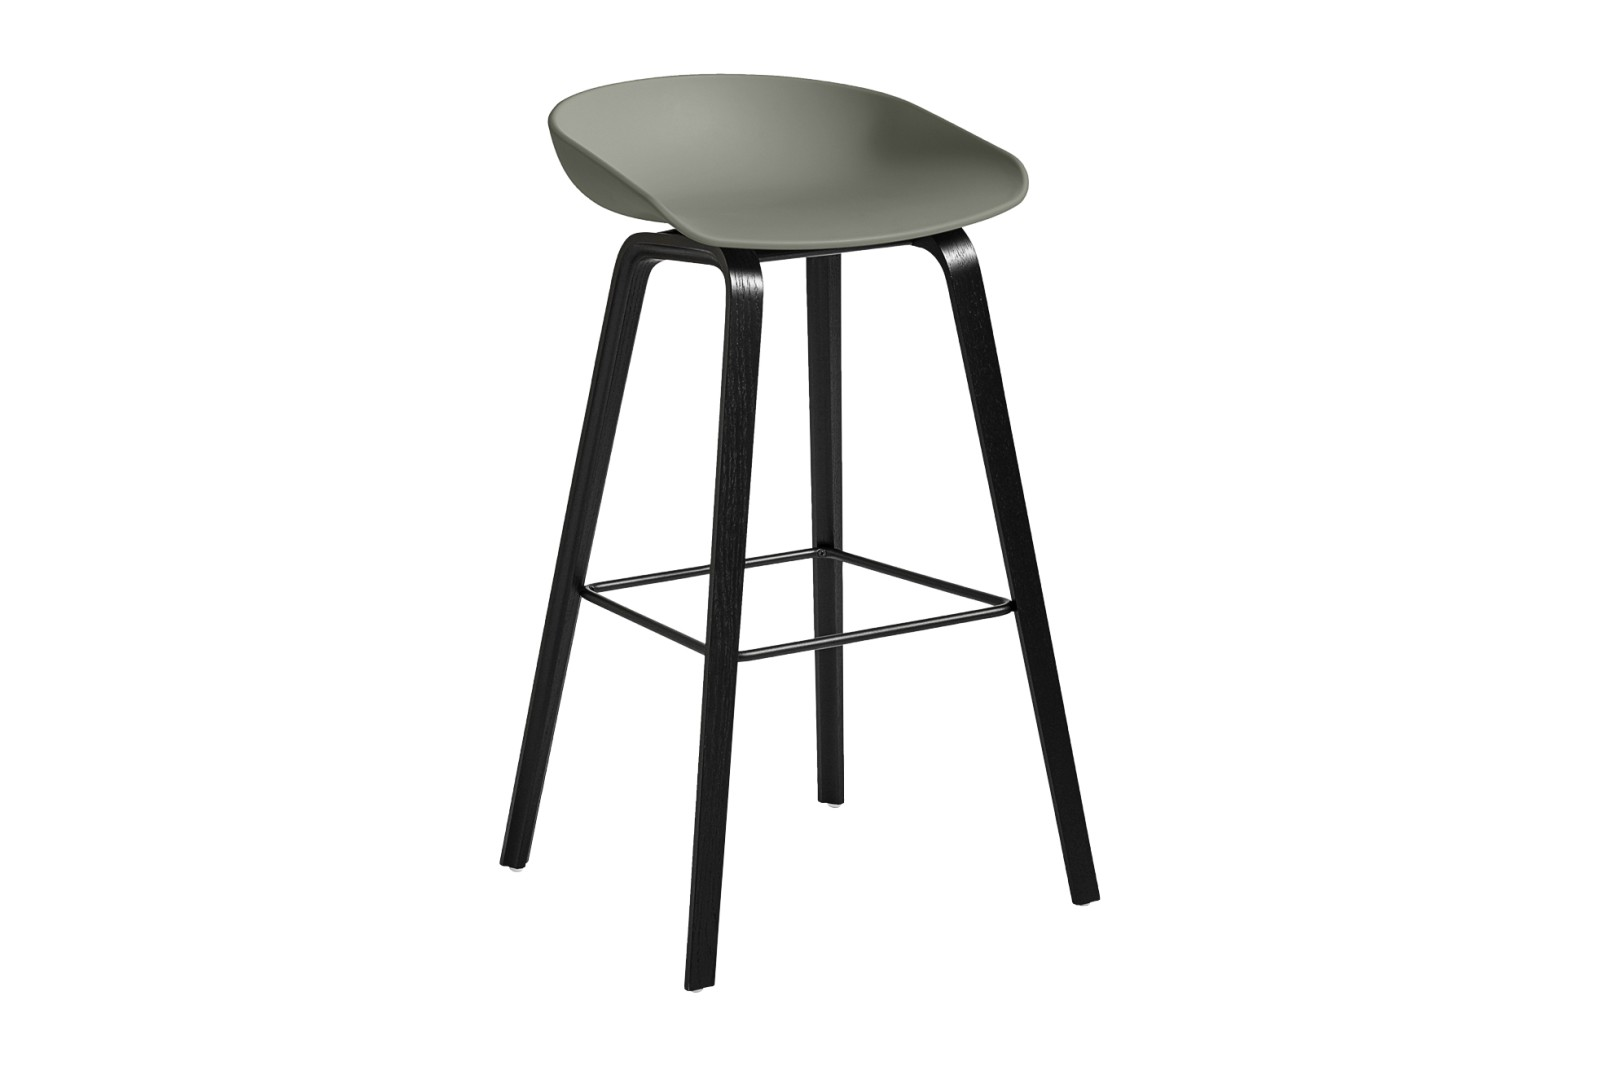 About A Stool AAS32 Black Stained Oak Base, Dusty Green Seat, High, Black Powder Coated Steel